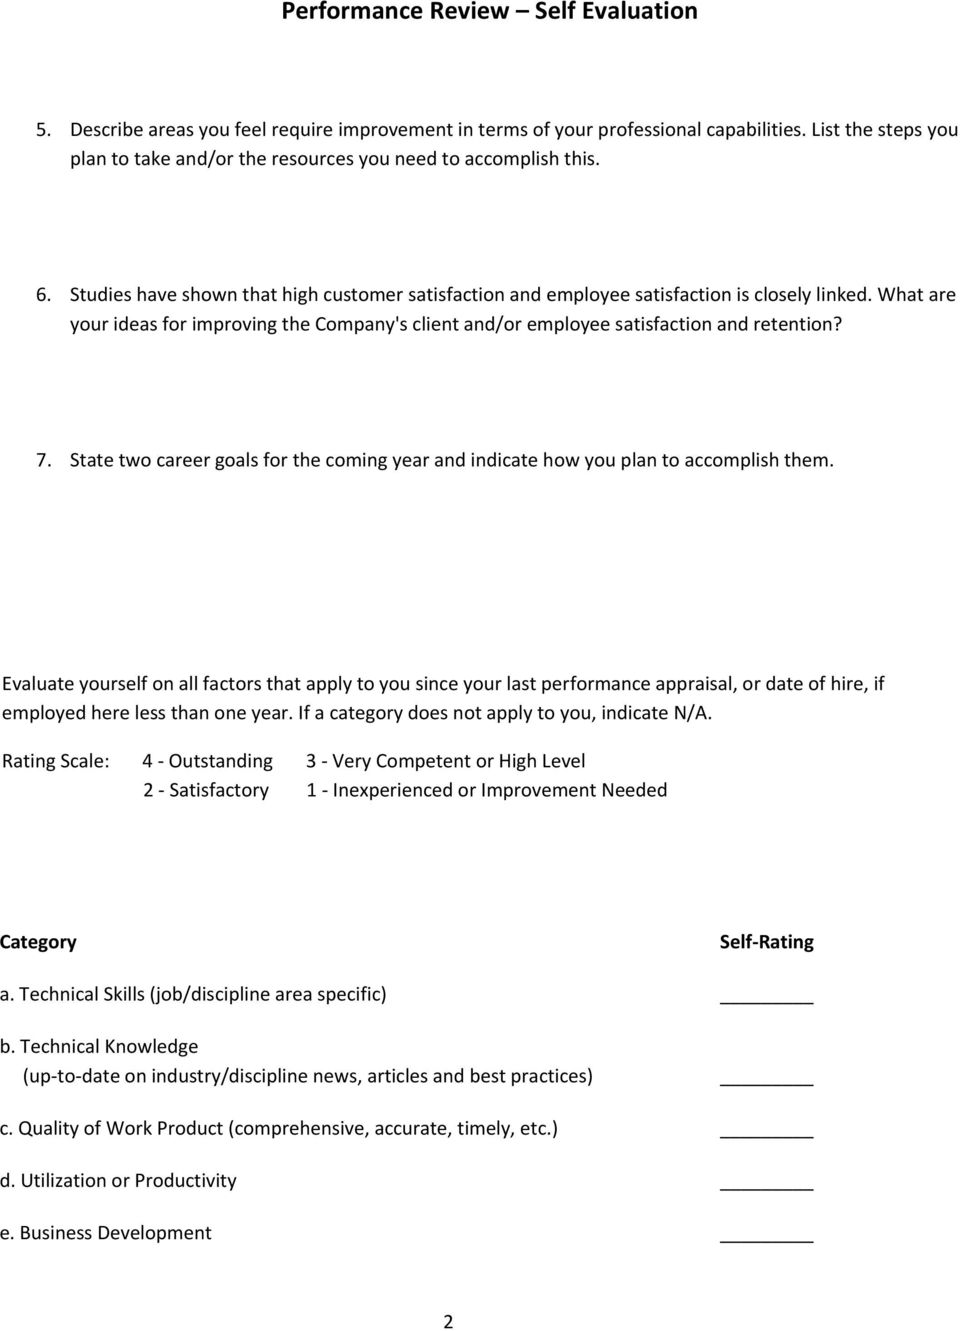 performance appraisal template samples pdf what are your ideas for improving the company s client and or employee satisfaction and retention